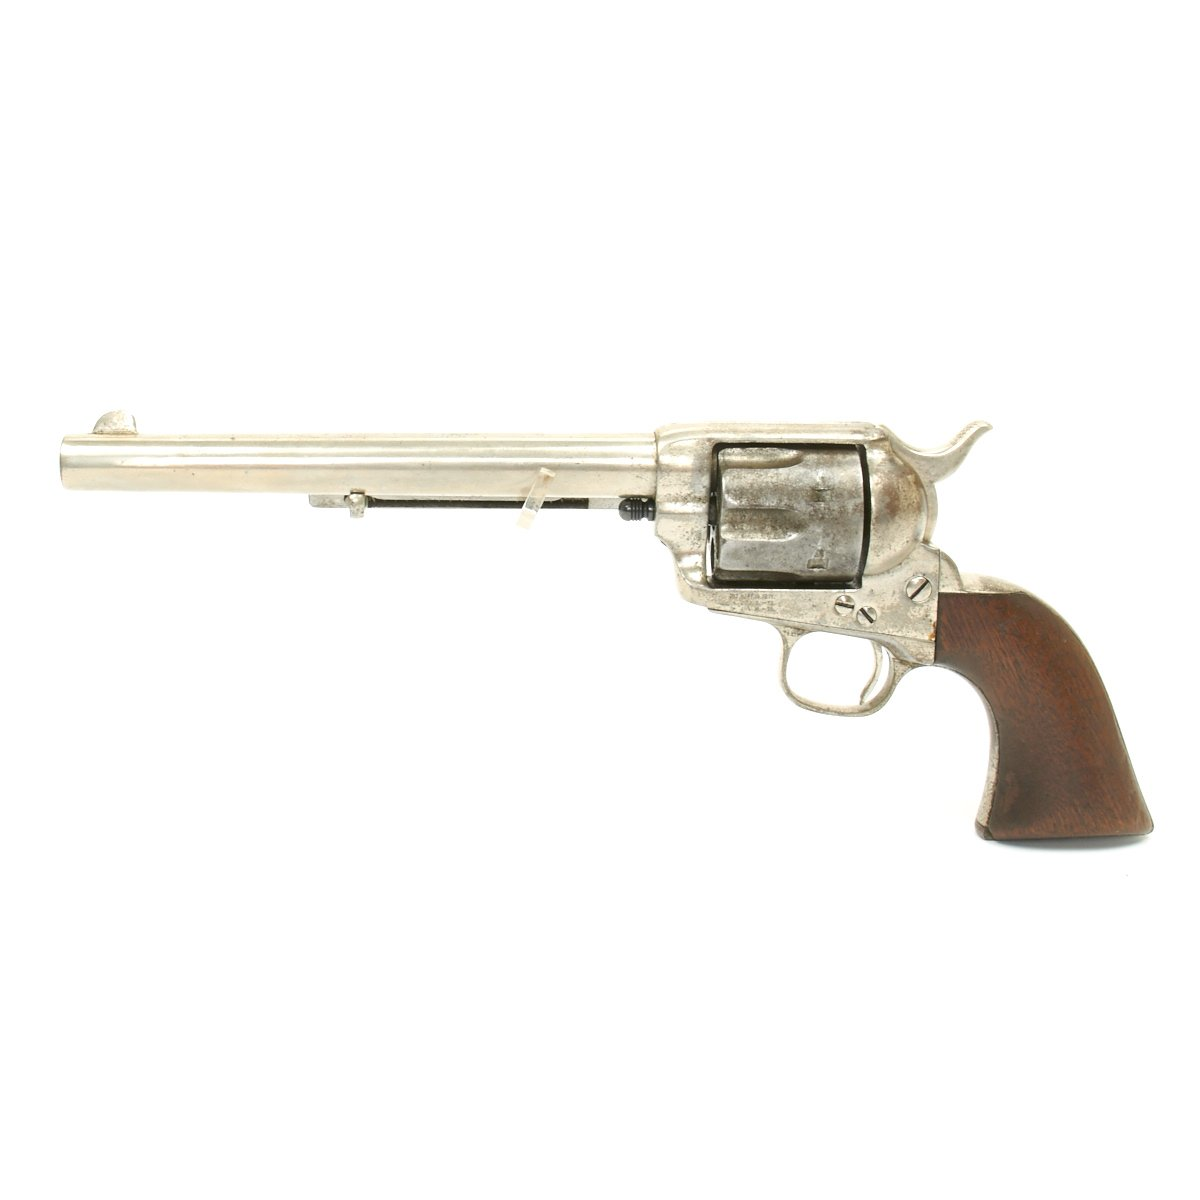 Original U S  Colt Nickel-Plated Single Action Army  44/40 Caliber Revolver  Serial 64654 - Made in 1881